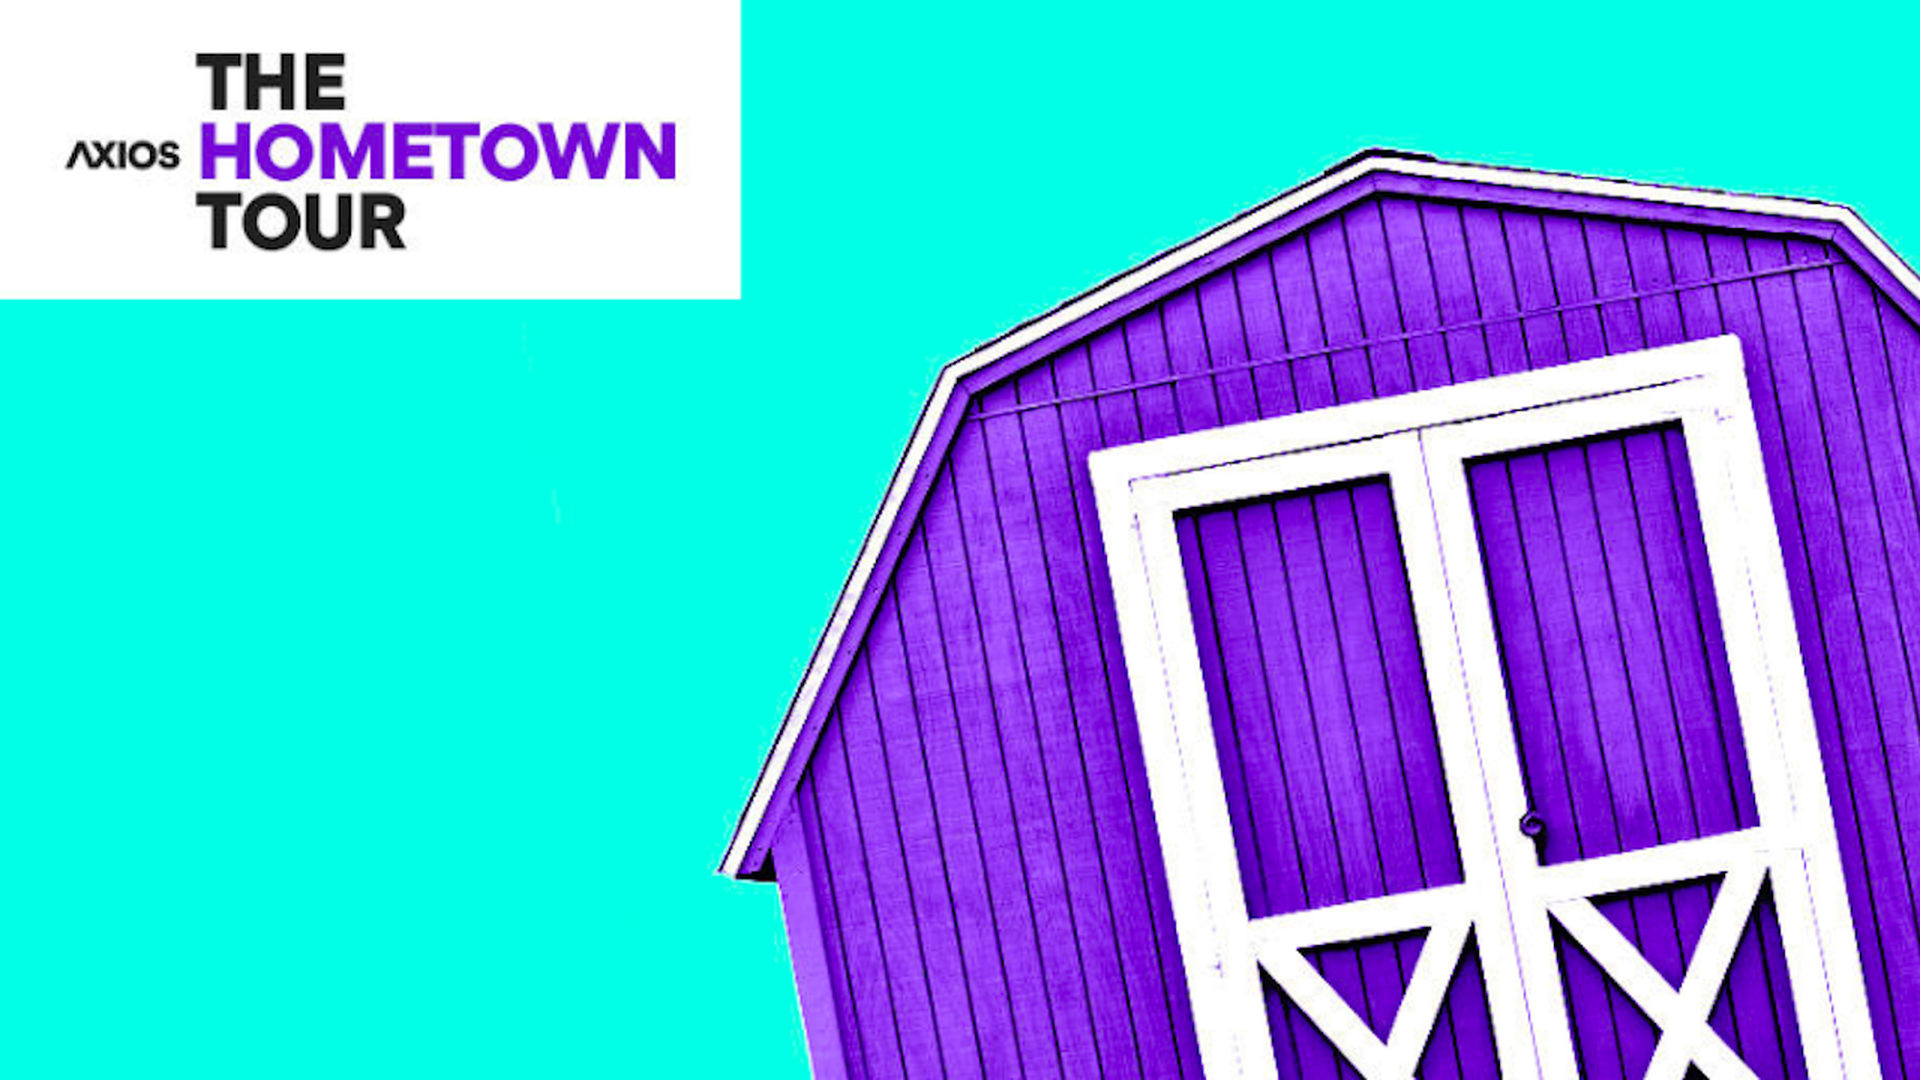 Axios' The Hometown Tour logo. It is a purple barn with blue background.